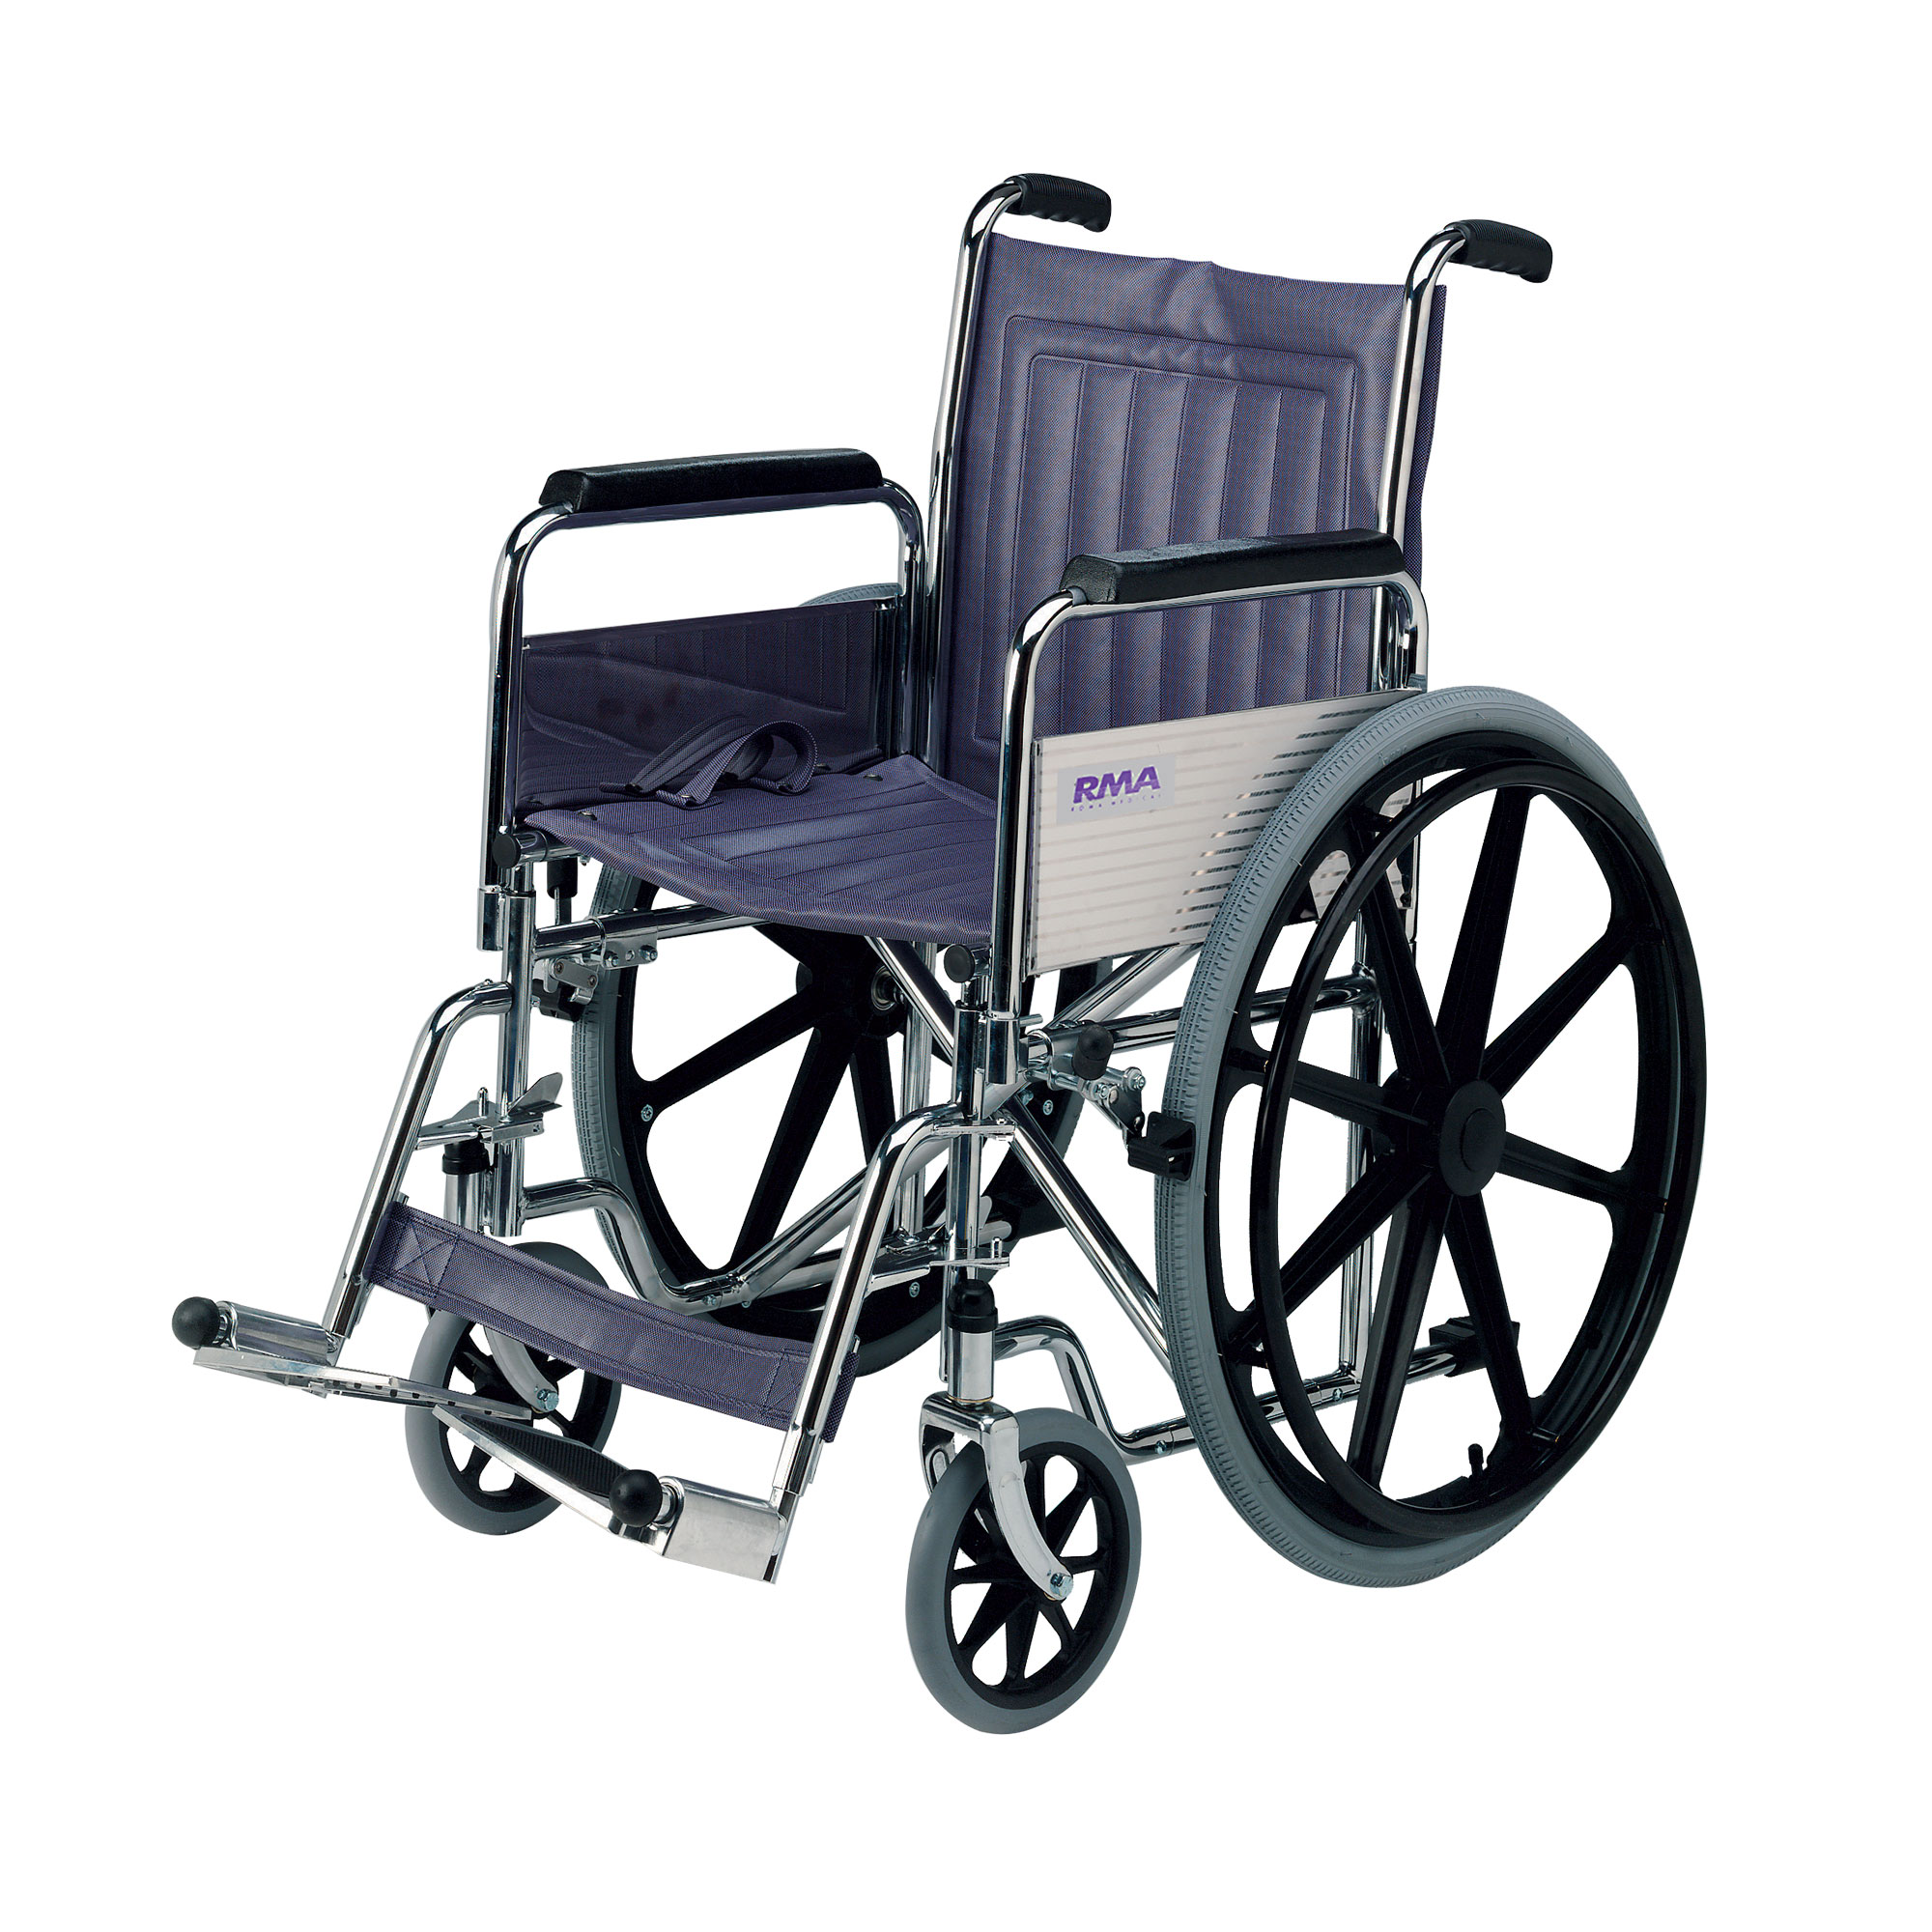 1410 Standard Self Propelled Wheelchair Roma Medical